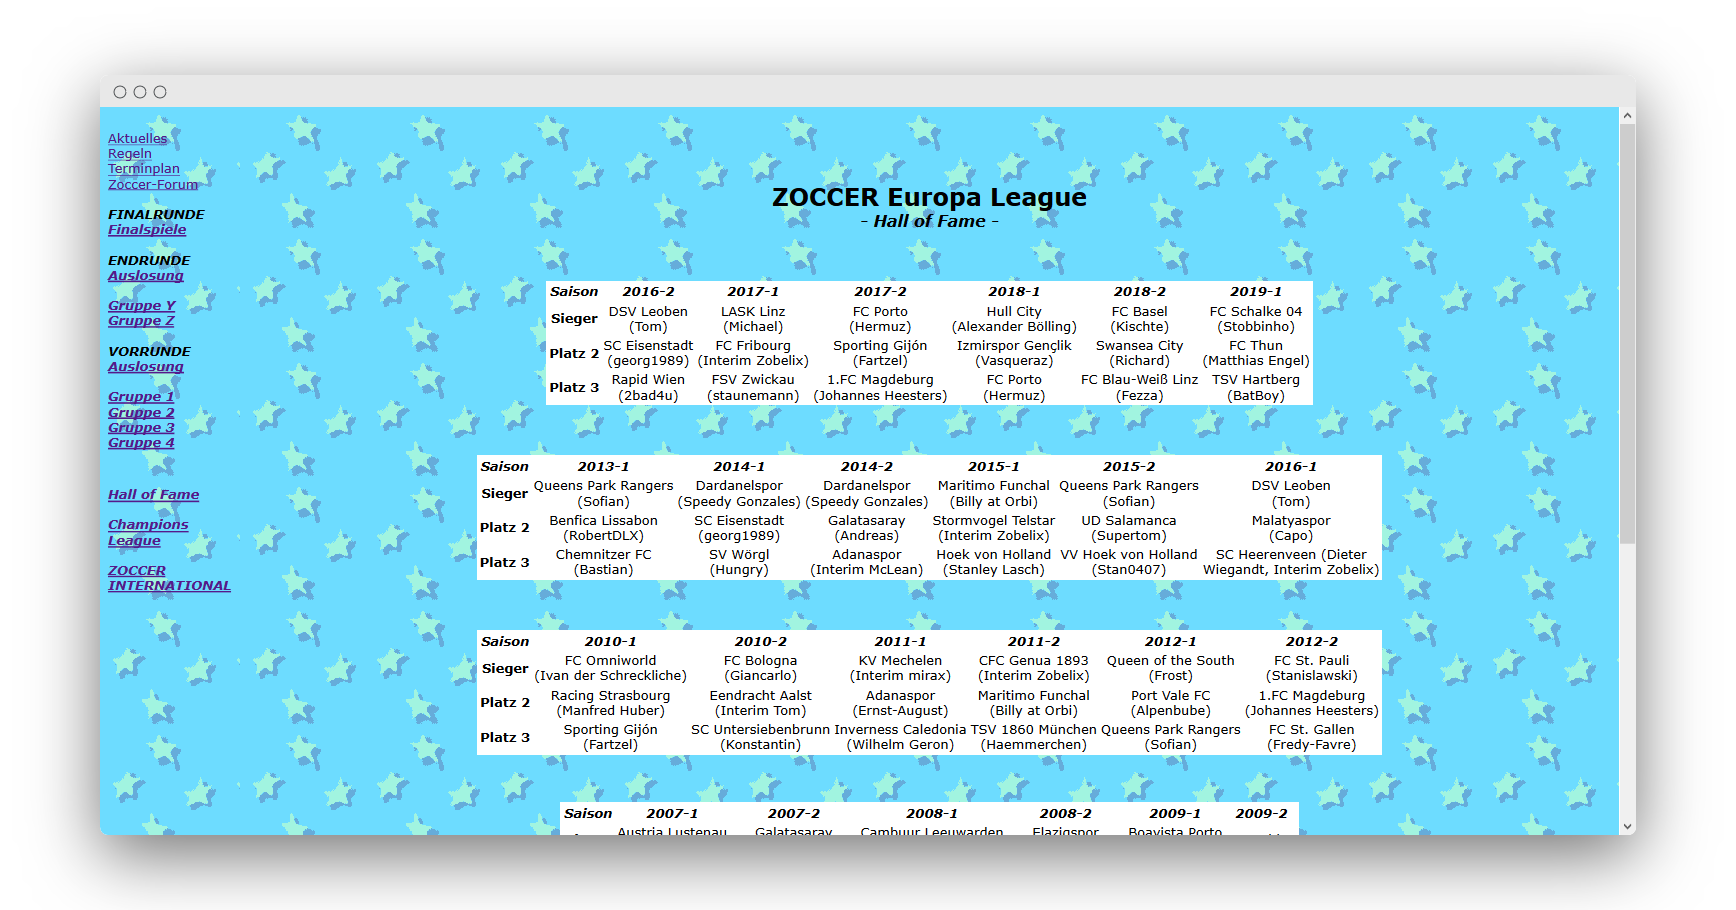 ZOCCER Europa League